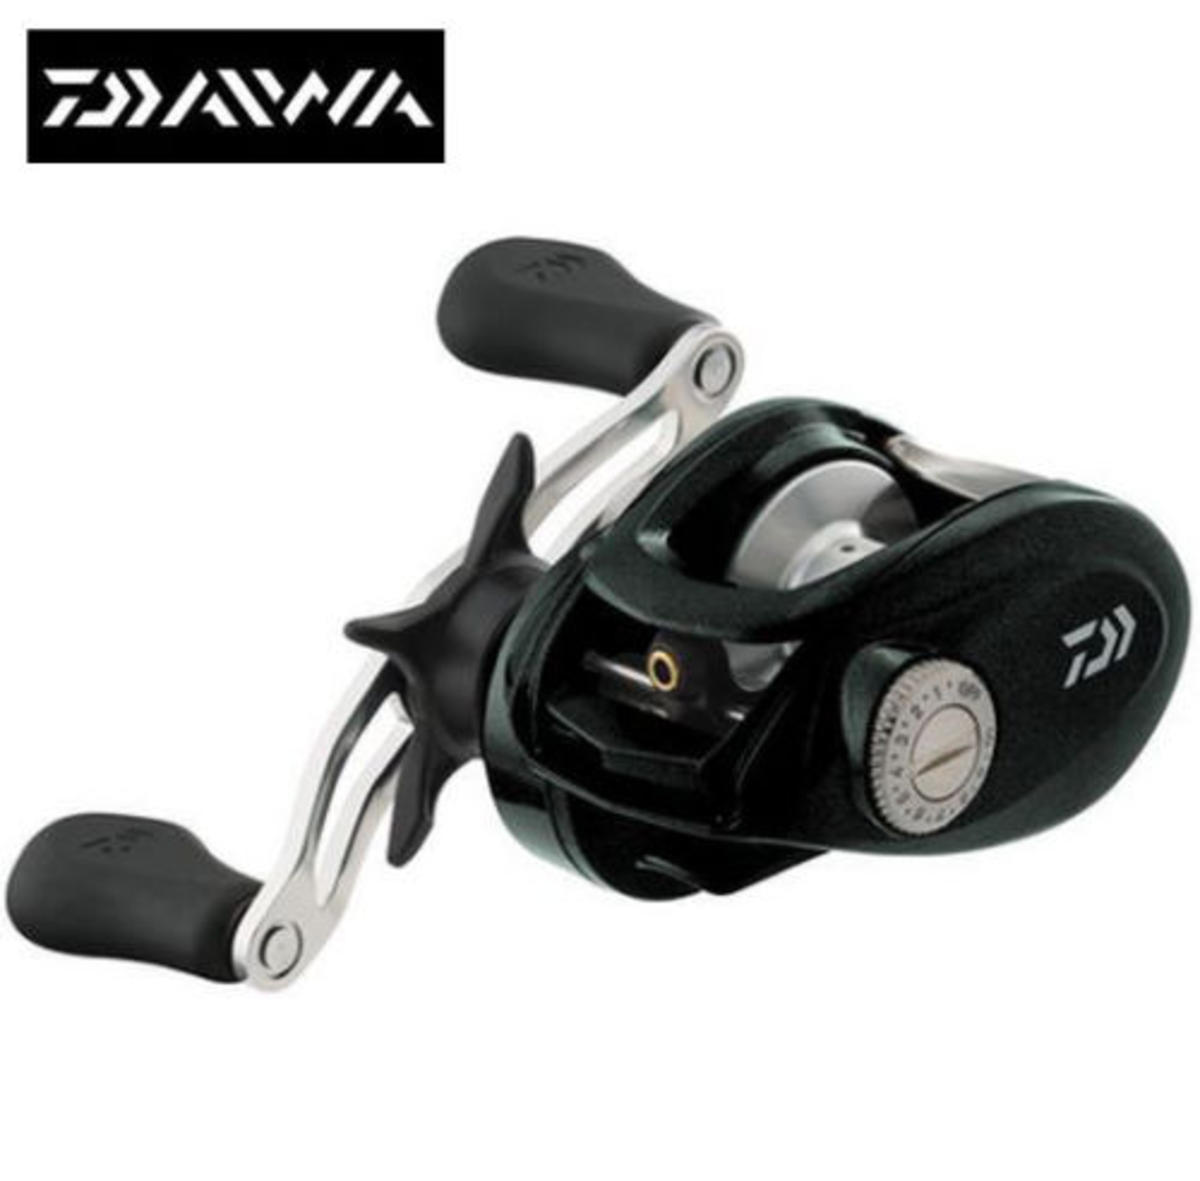 EX DISPLAY DAIWA LAGUNA 100HA BAITCASTING FISHING REEL